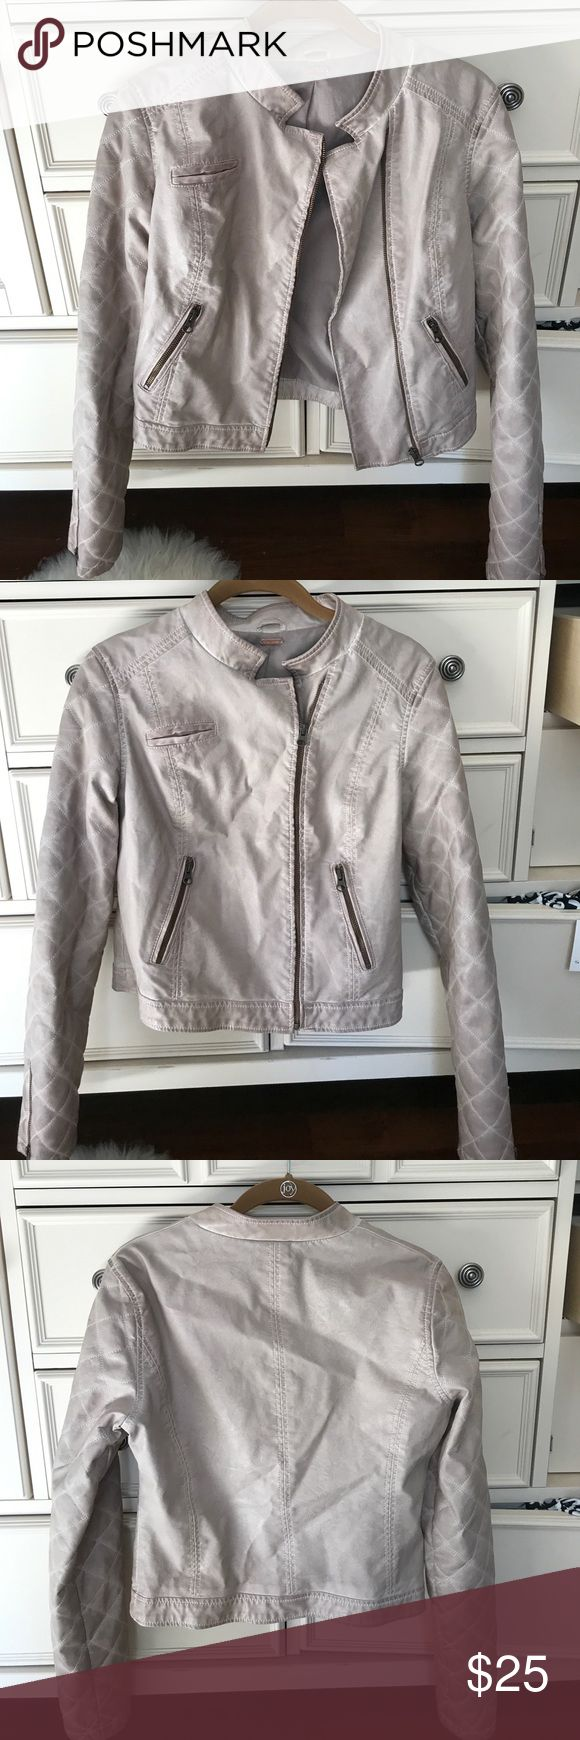 Free people Jacket Mauve Free People quilted detailed jacket! Size S/M and worn only a few times! Perfect for a cool fall day or a night out! Free People Jackets & Coats